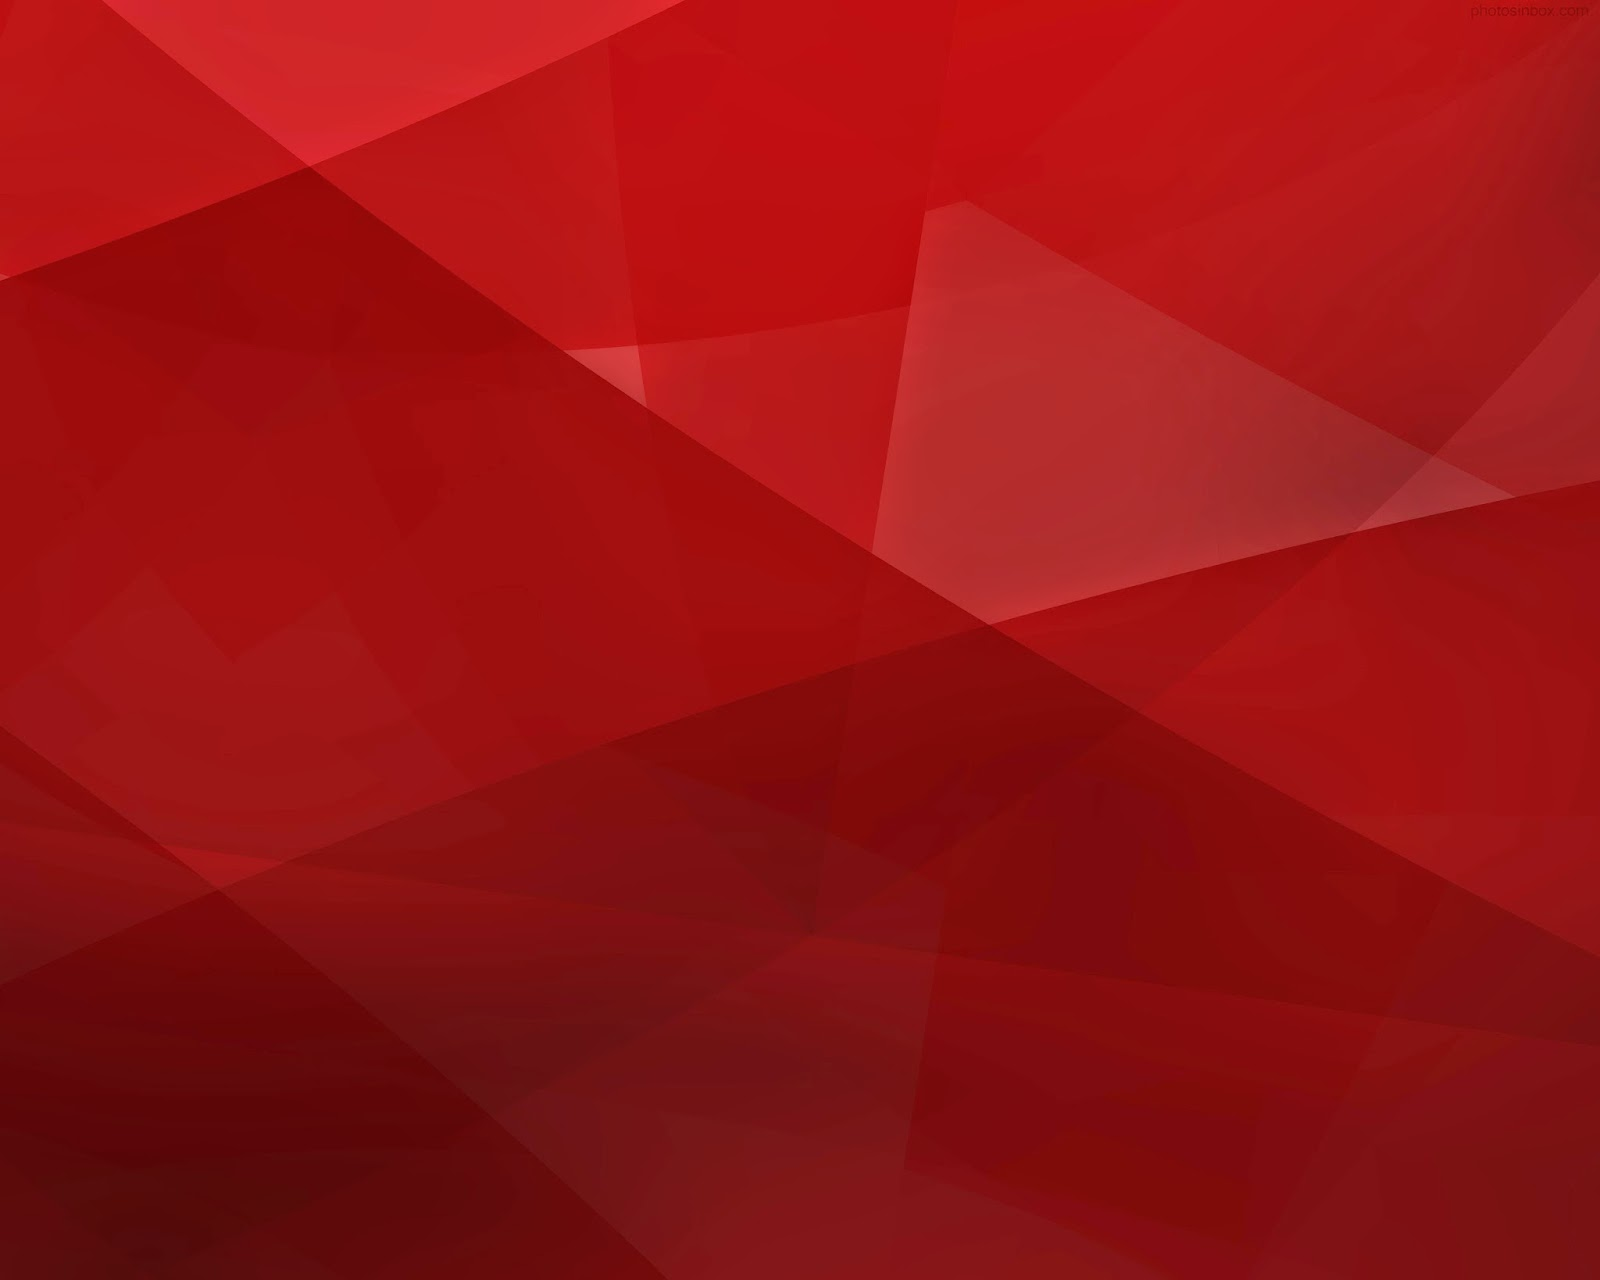 Download image Powerpoint Background Merah PC, Android, iPhone and ...